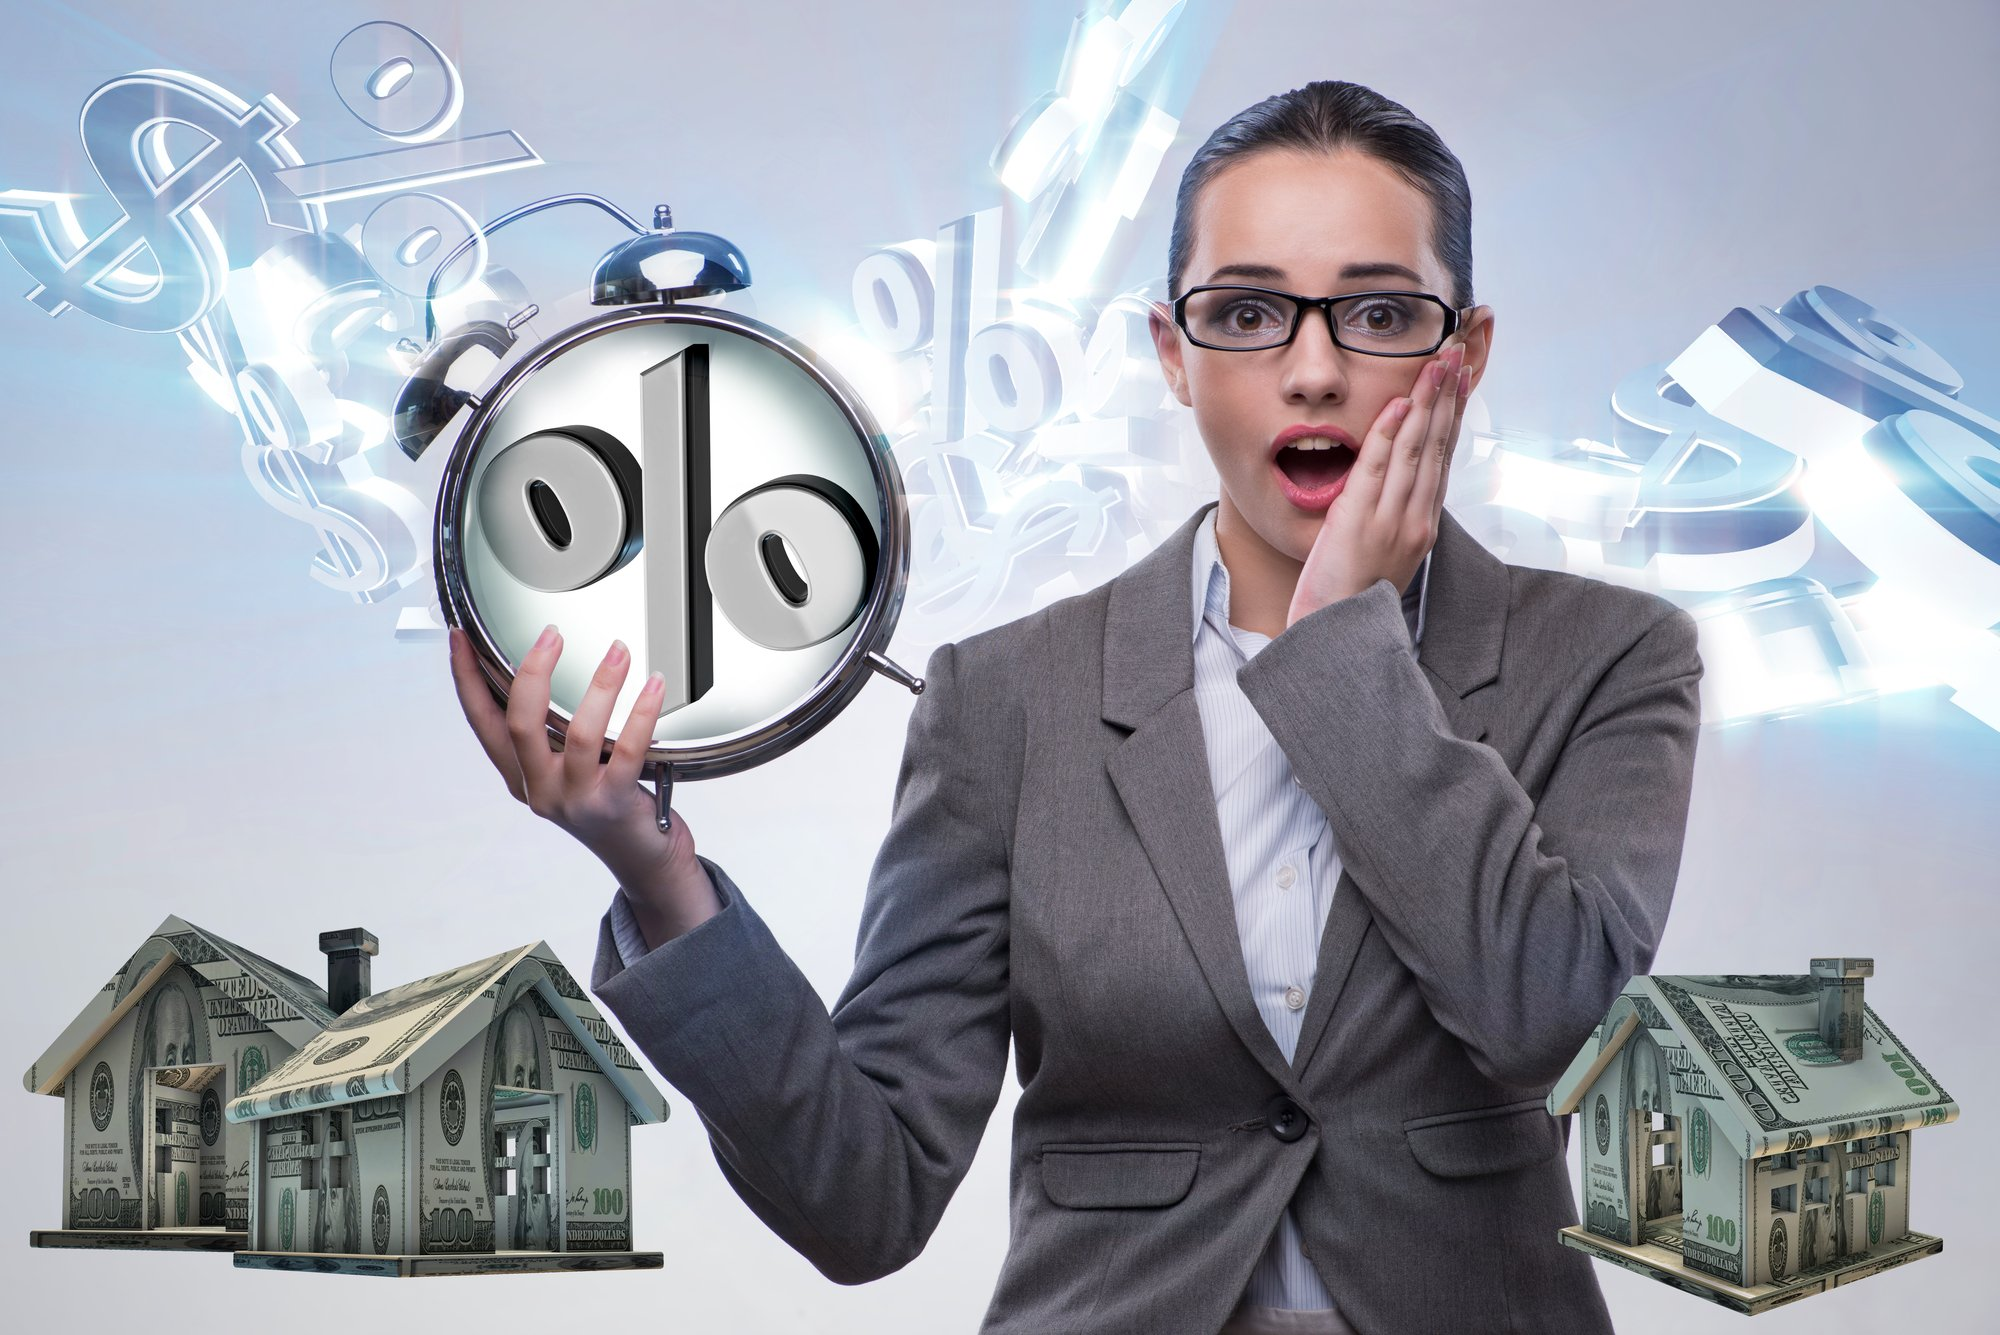 Businesswoman suprised about high interest mortgage rates, market analysis